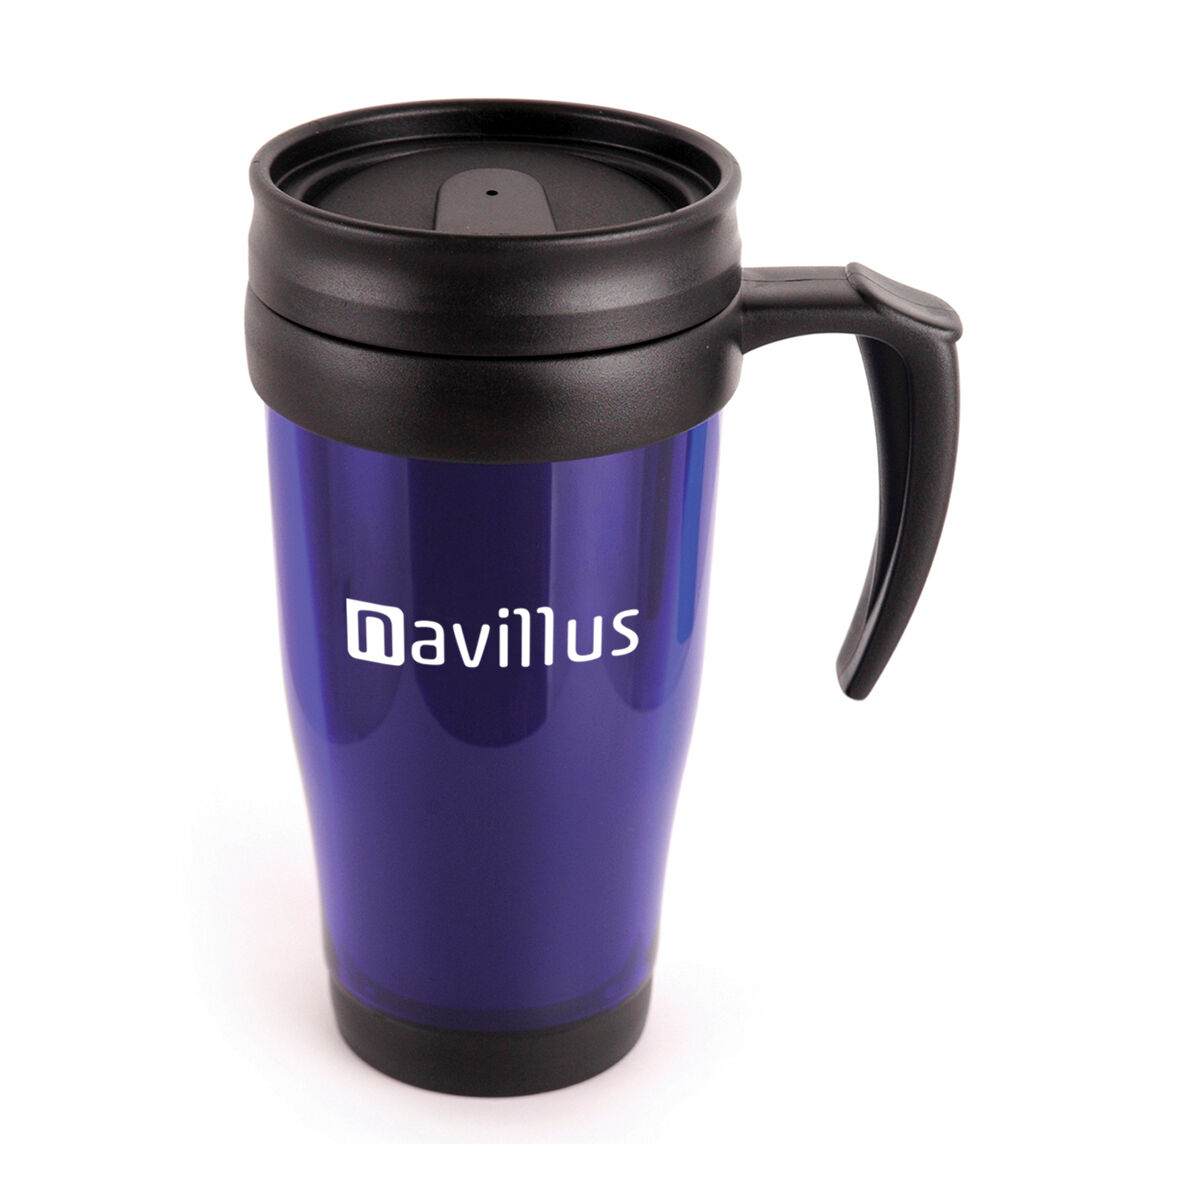 Translucent Coloured Travel Mug with Handle in blue